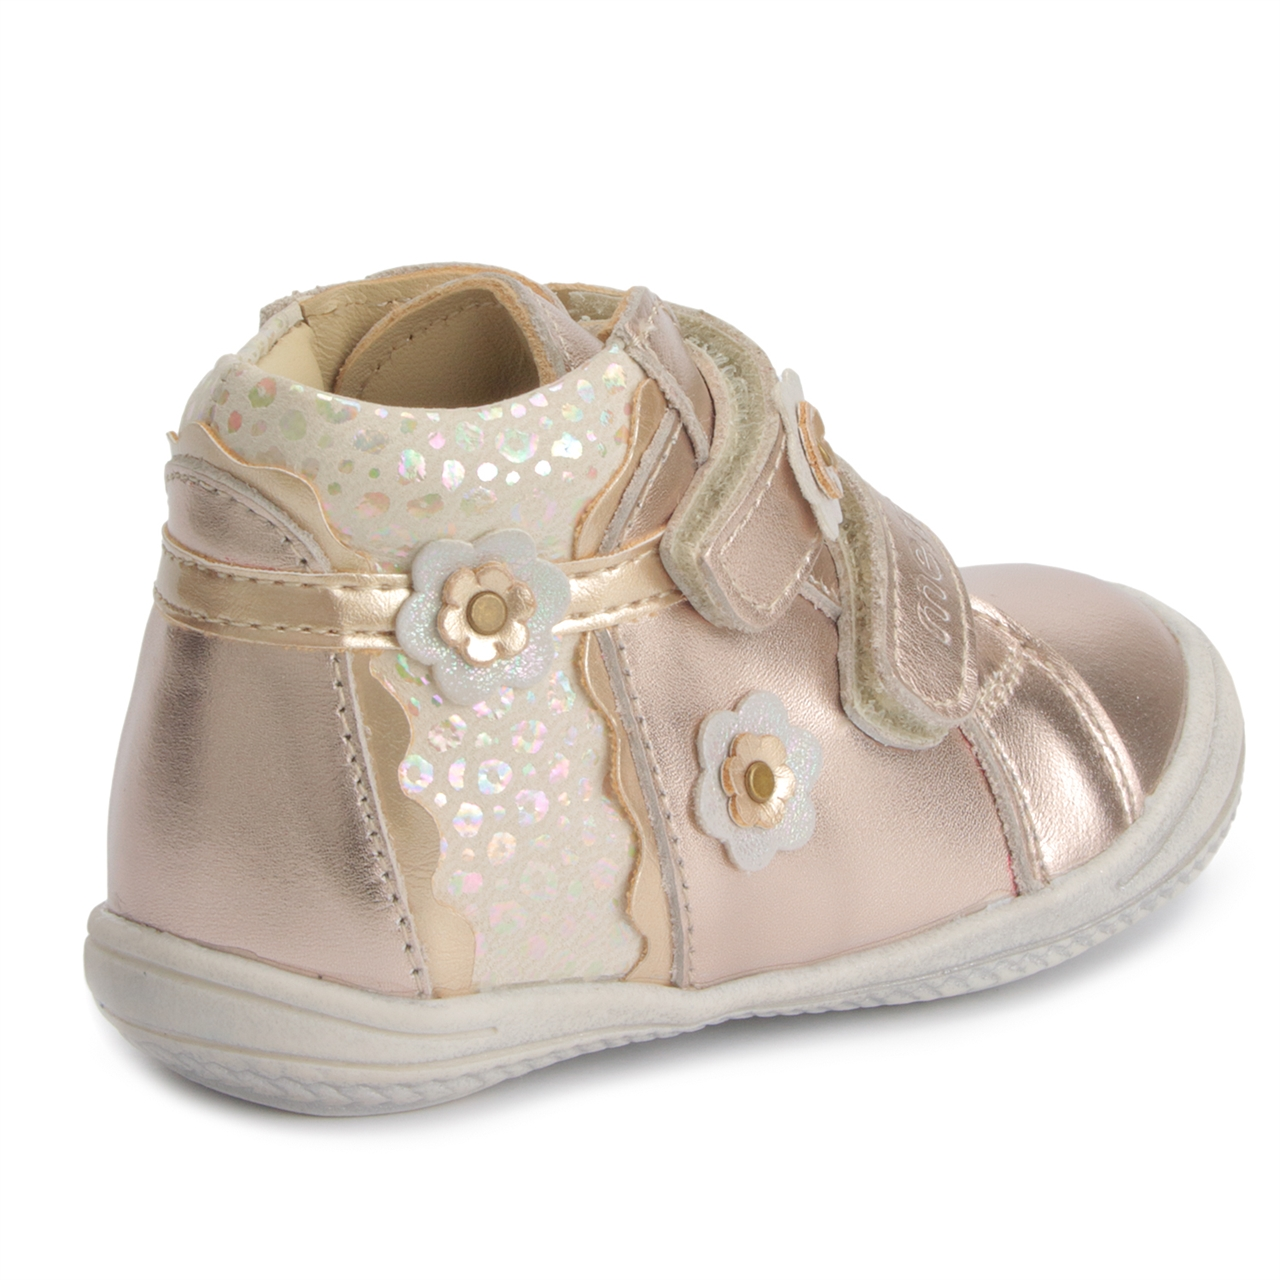 2095ac57d0 ... Picture of Memo Bella 3FD First Walking Orthopedic Girls Shoes Natural  Leather Sneakers (Toddler) ...